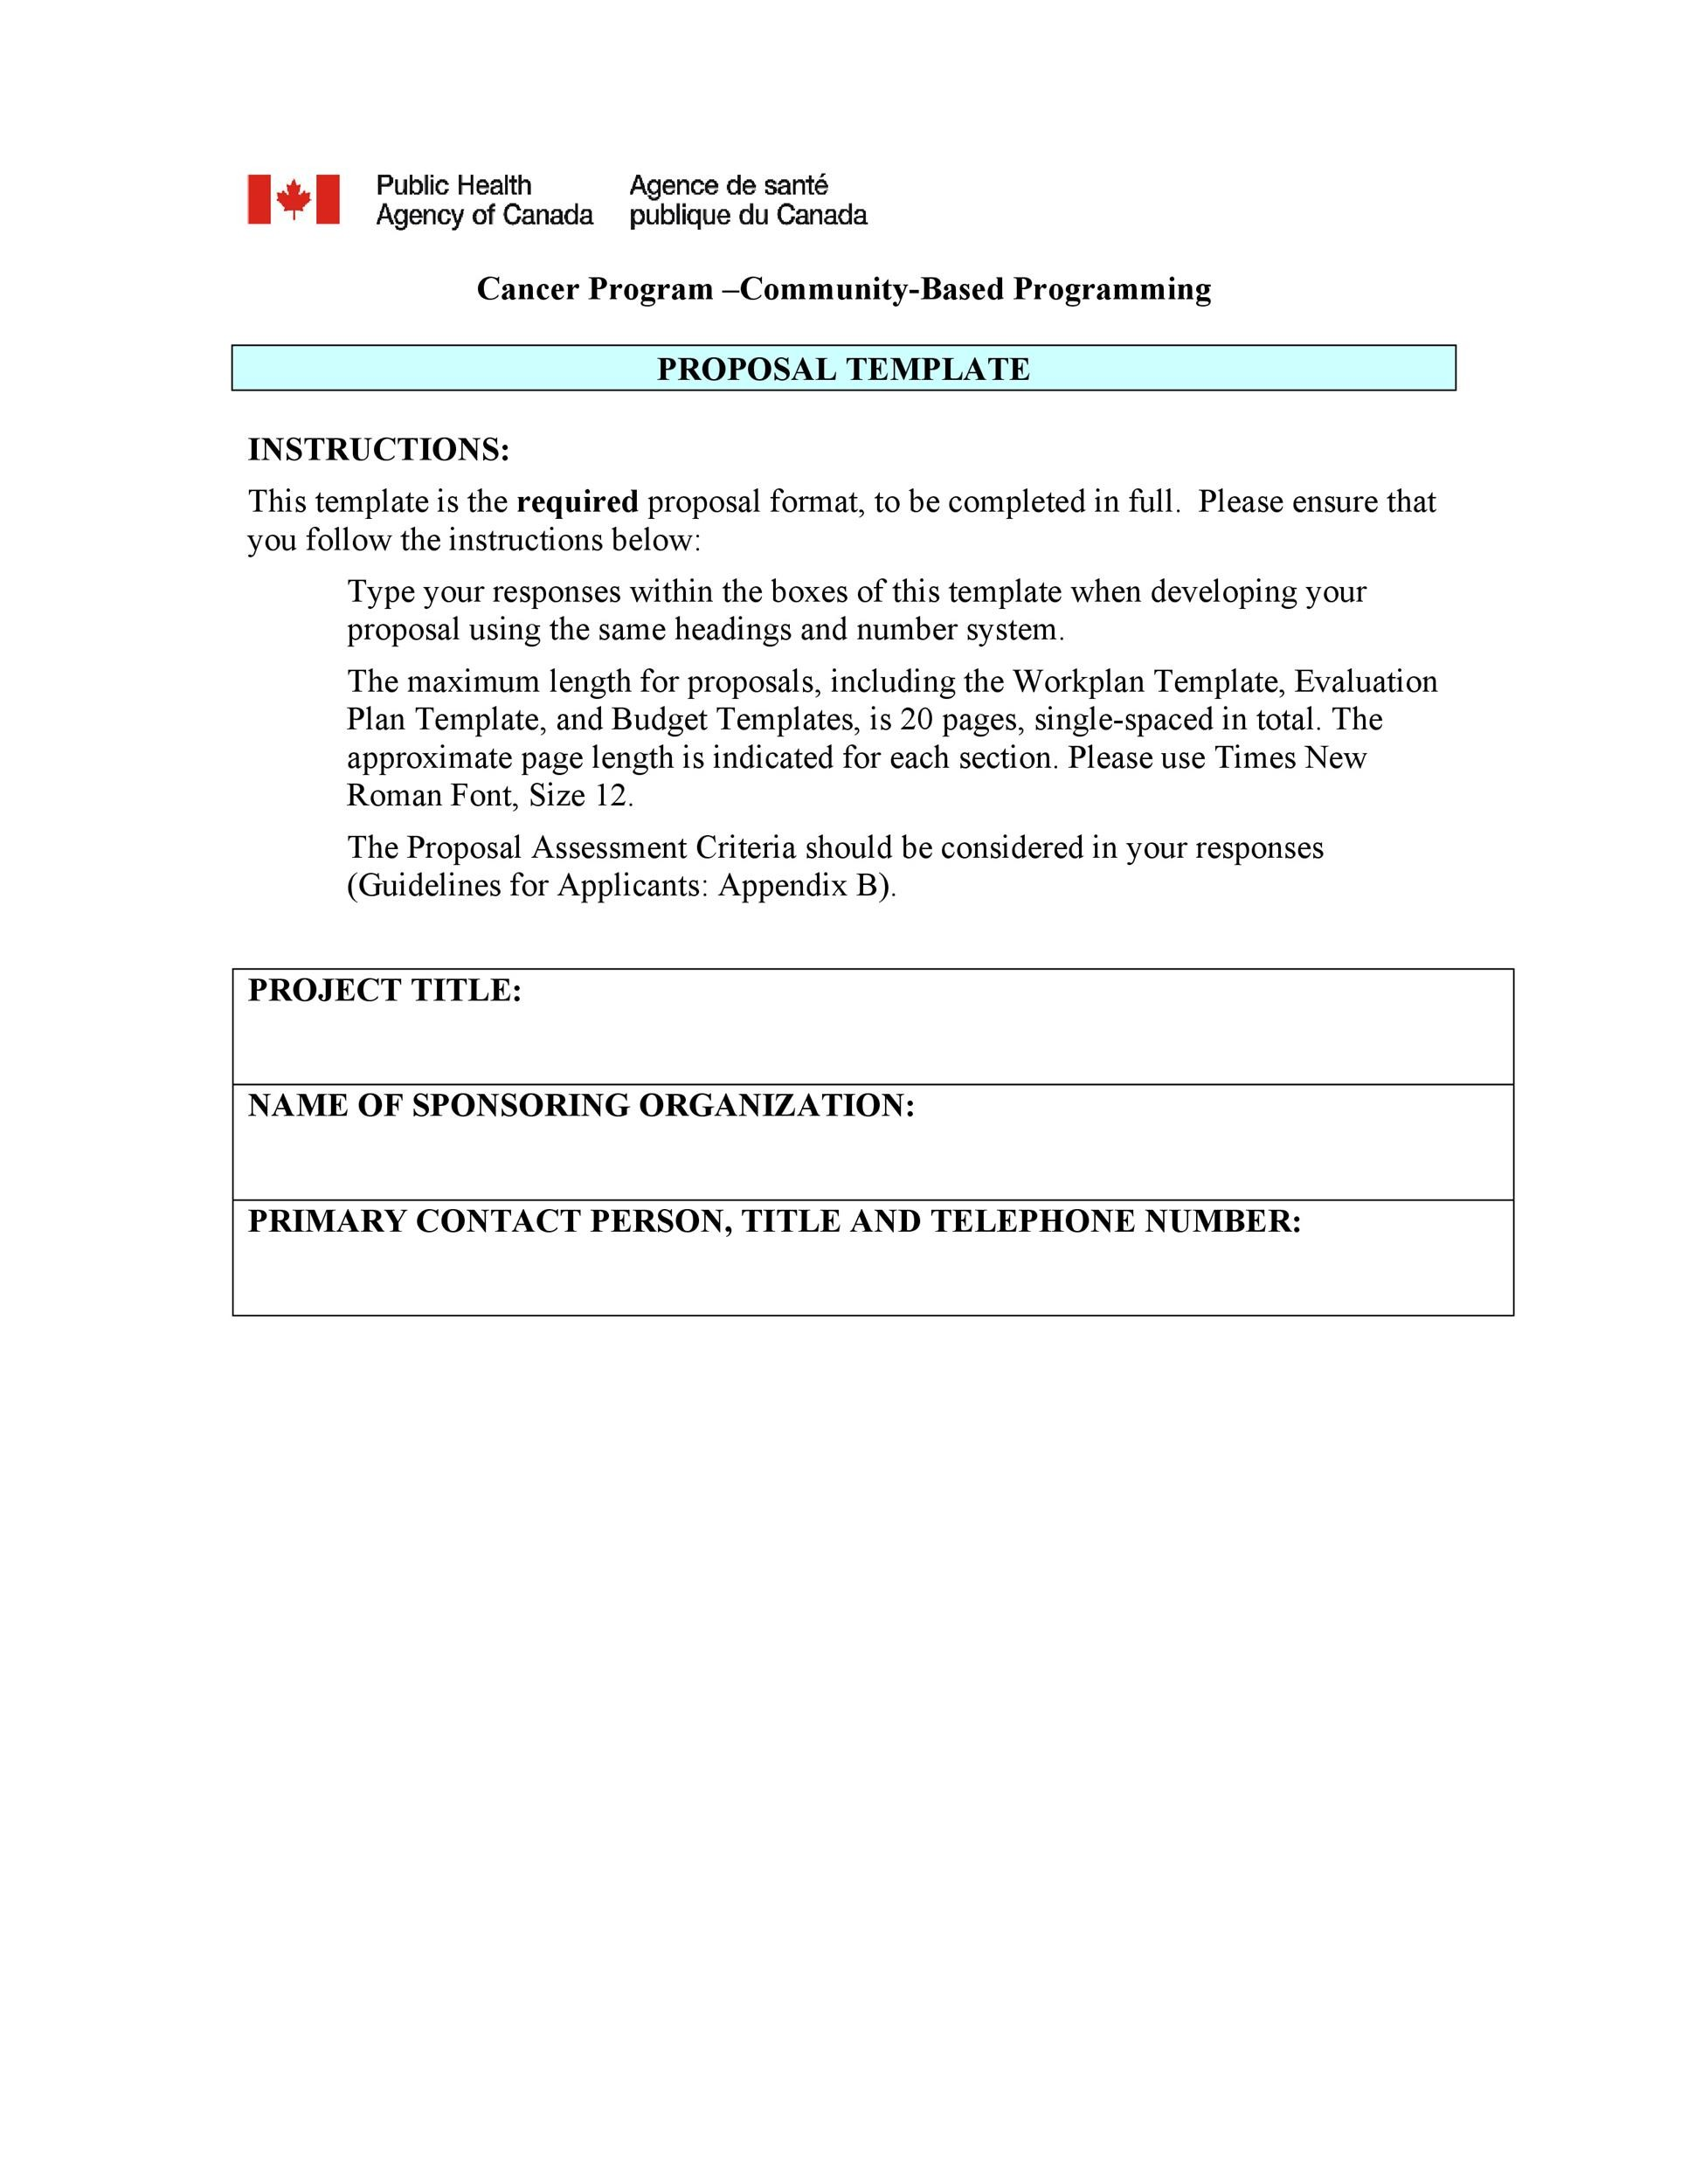 Research proposal template | business mentor.